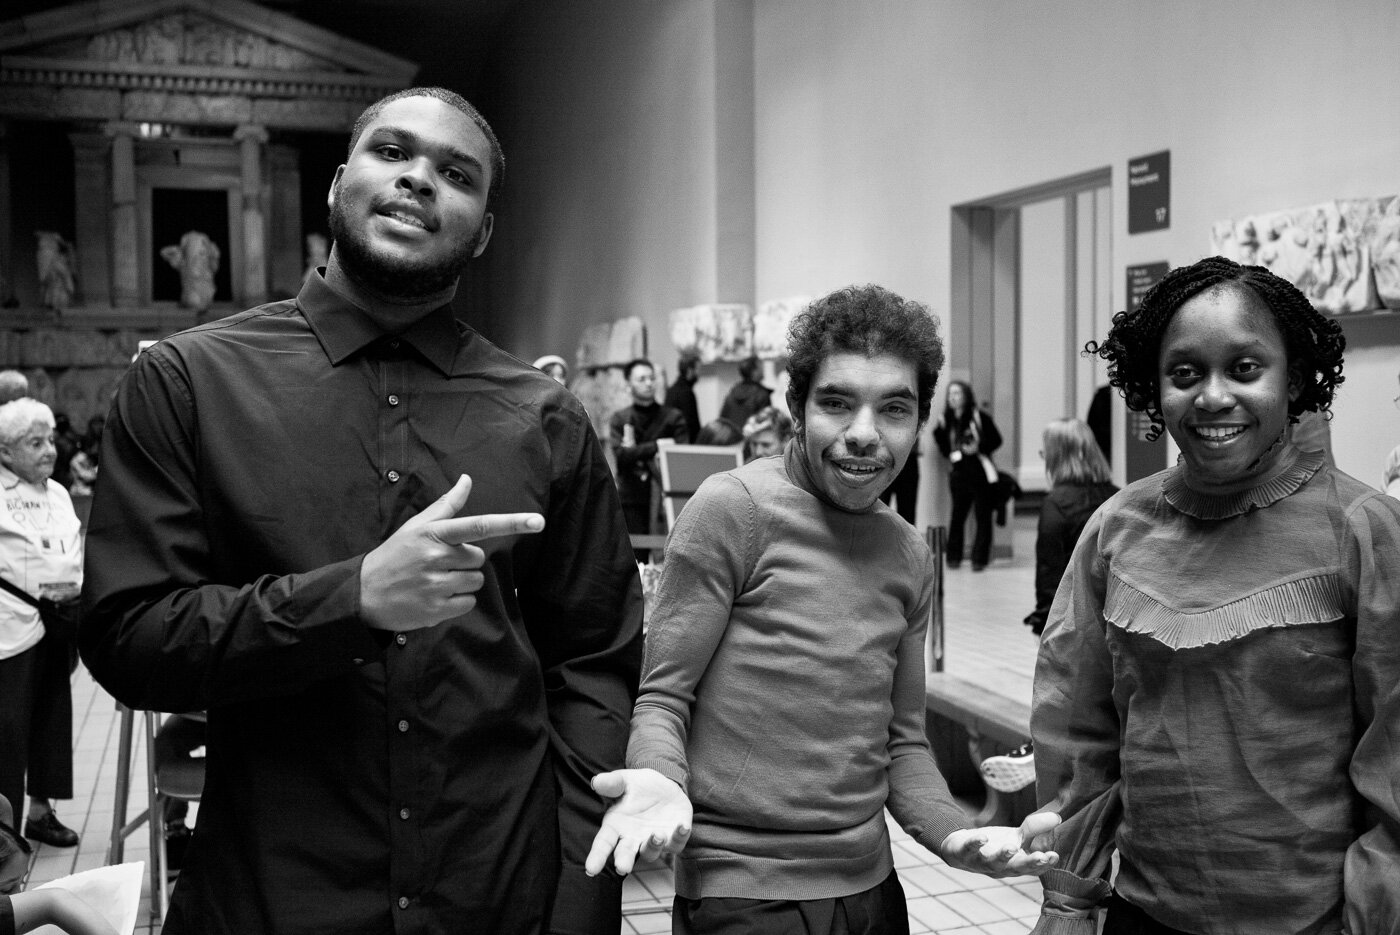 #22 / 30 - 'Coming to Kick Up means I am part of a diverse crew of people with lots of aspiration and creativity'- Fabian Ofori, Kick Up DancerImage of Fabian, DJ and Sherri at British Museum's Lottery Big Draw Project Photo by @joncarchdeacon